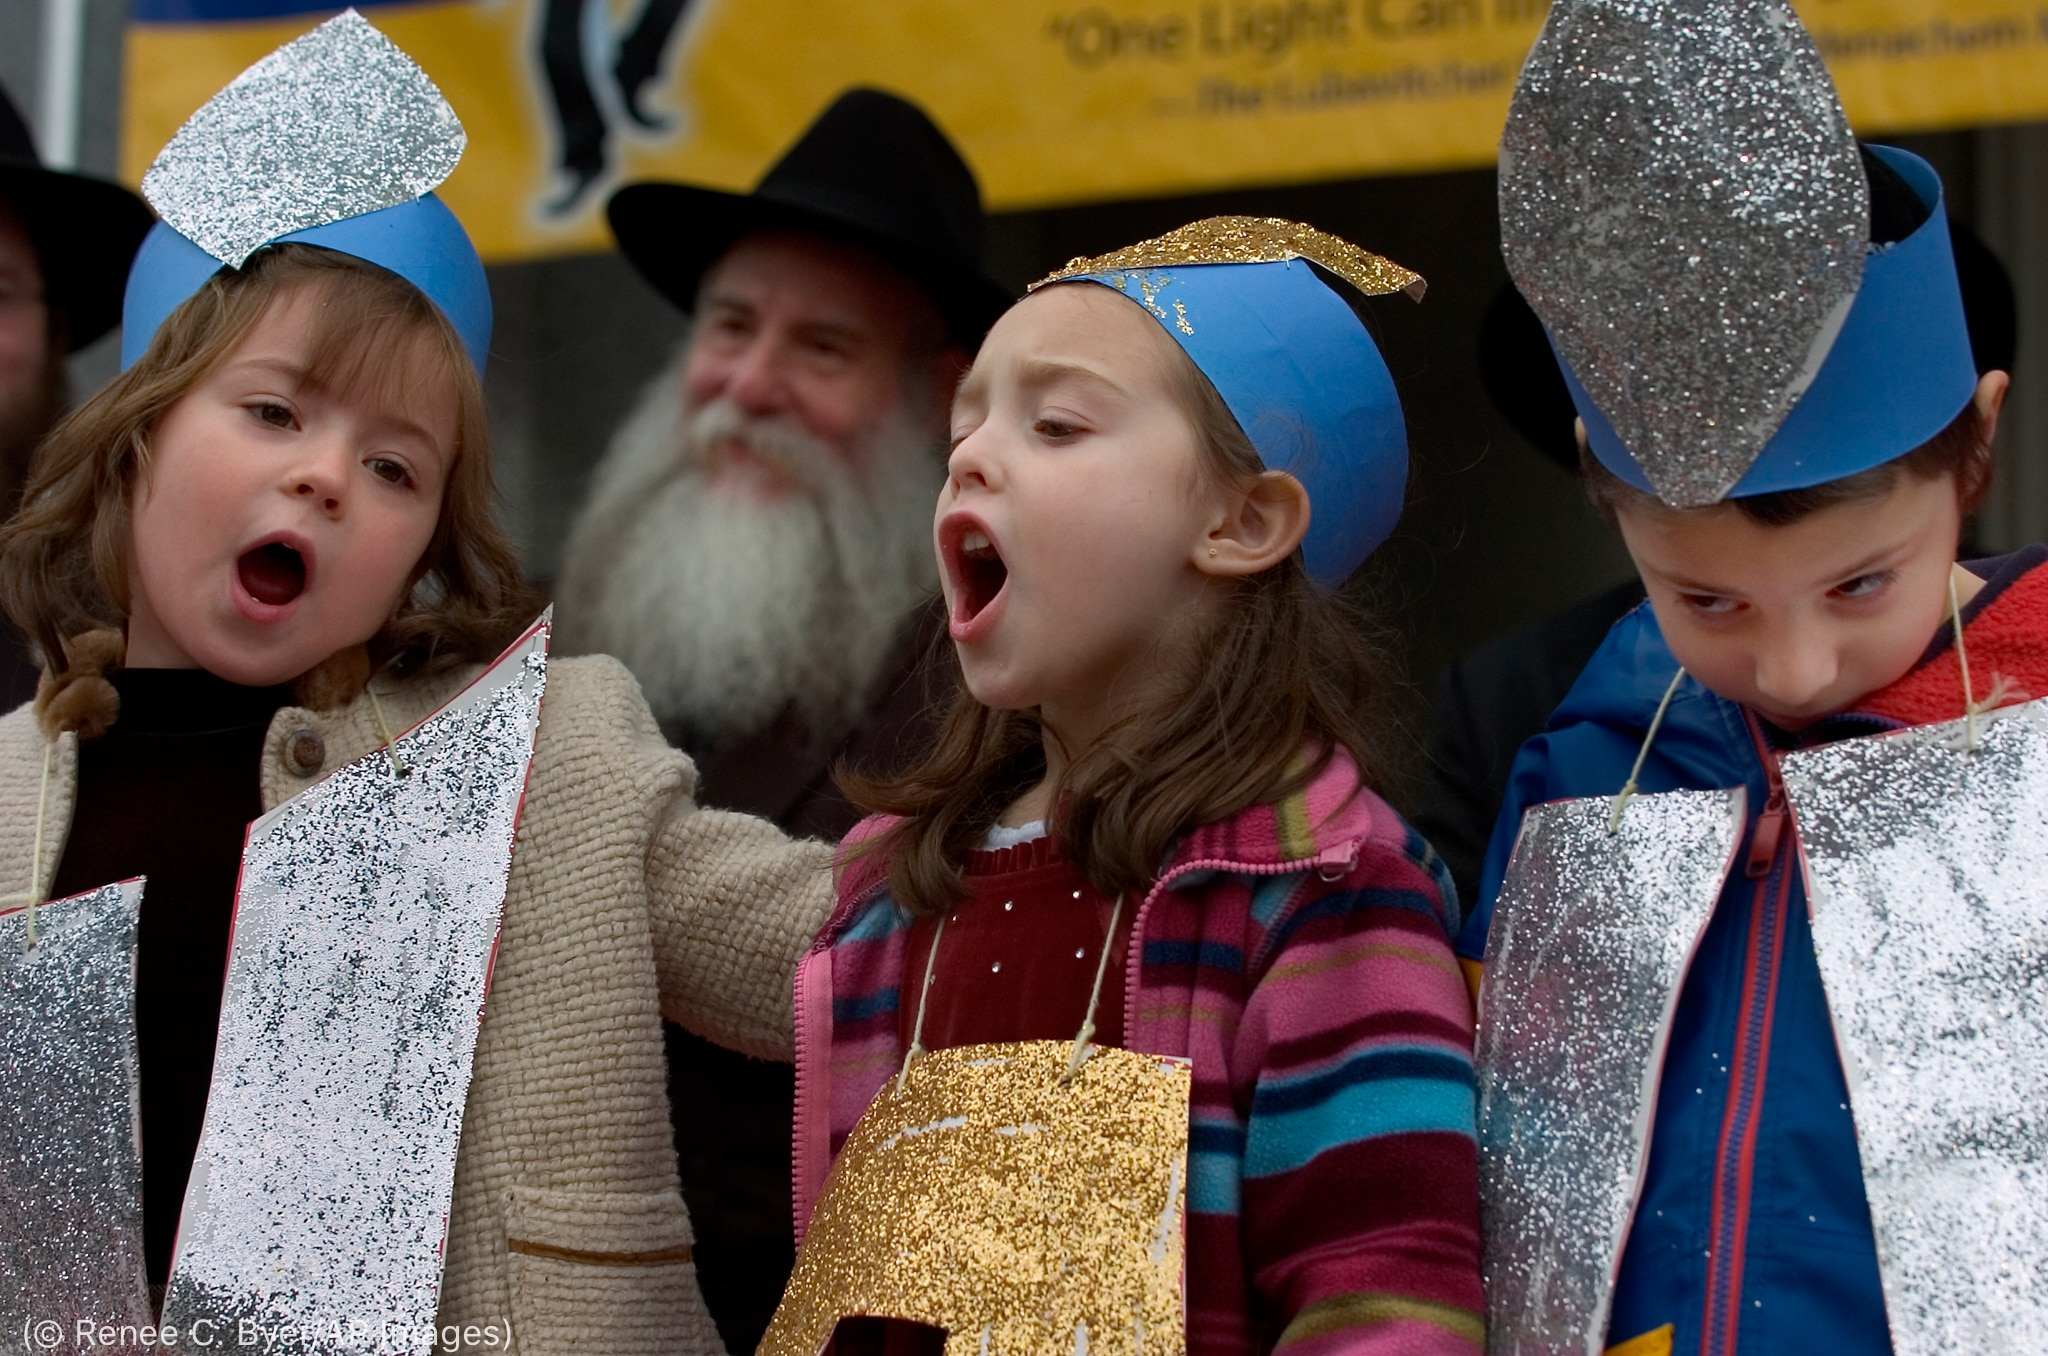 Children singing and wearing hats (© Renee C. Byer/AP Images)